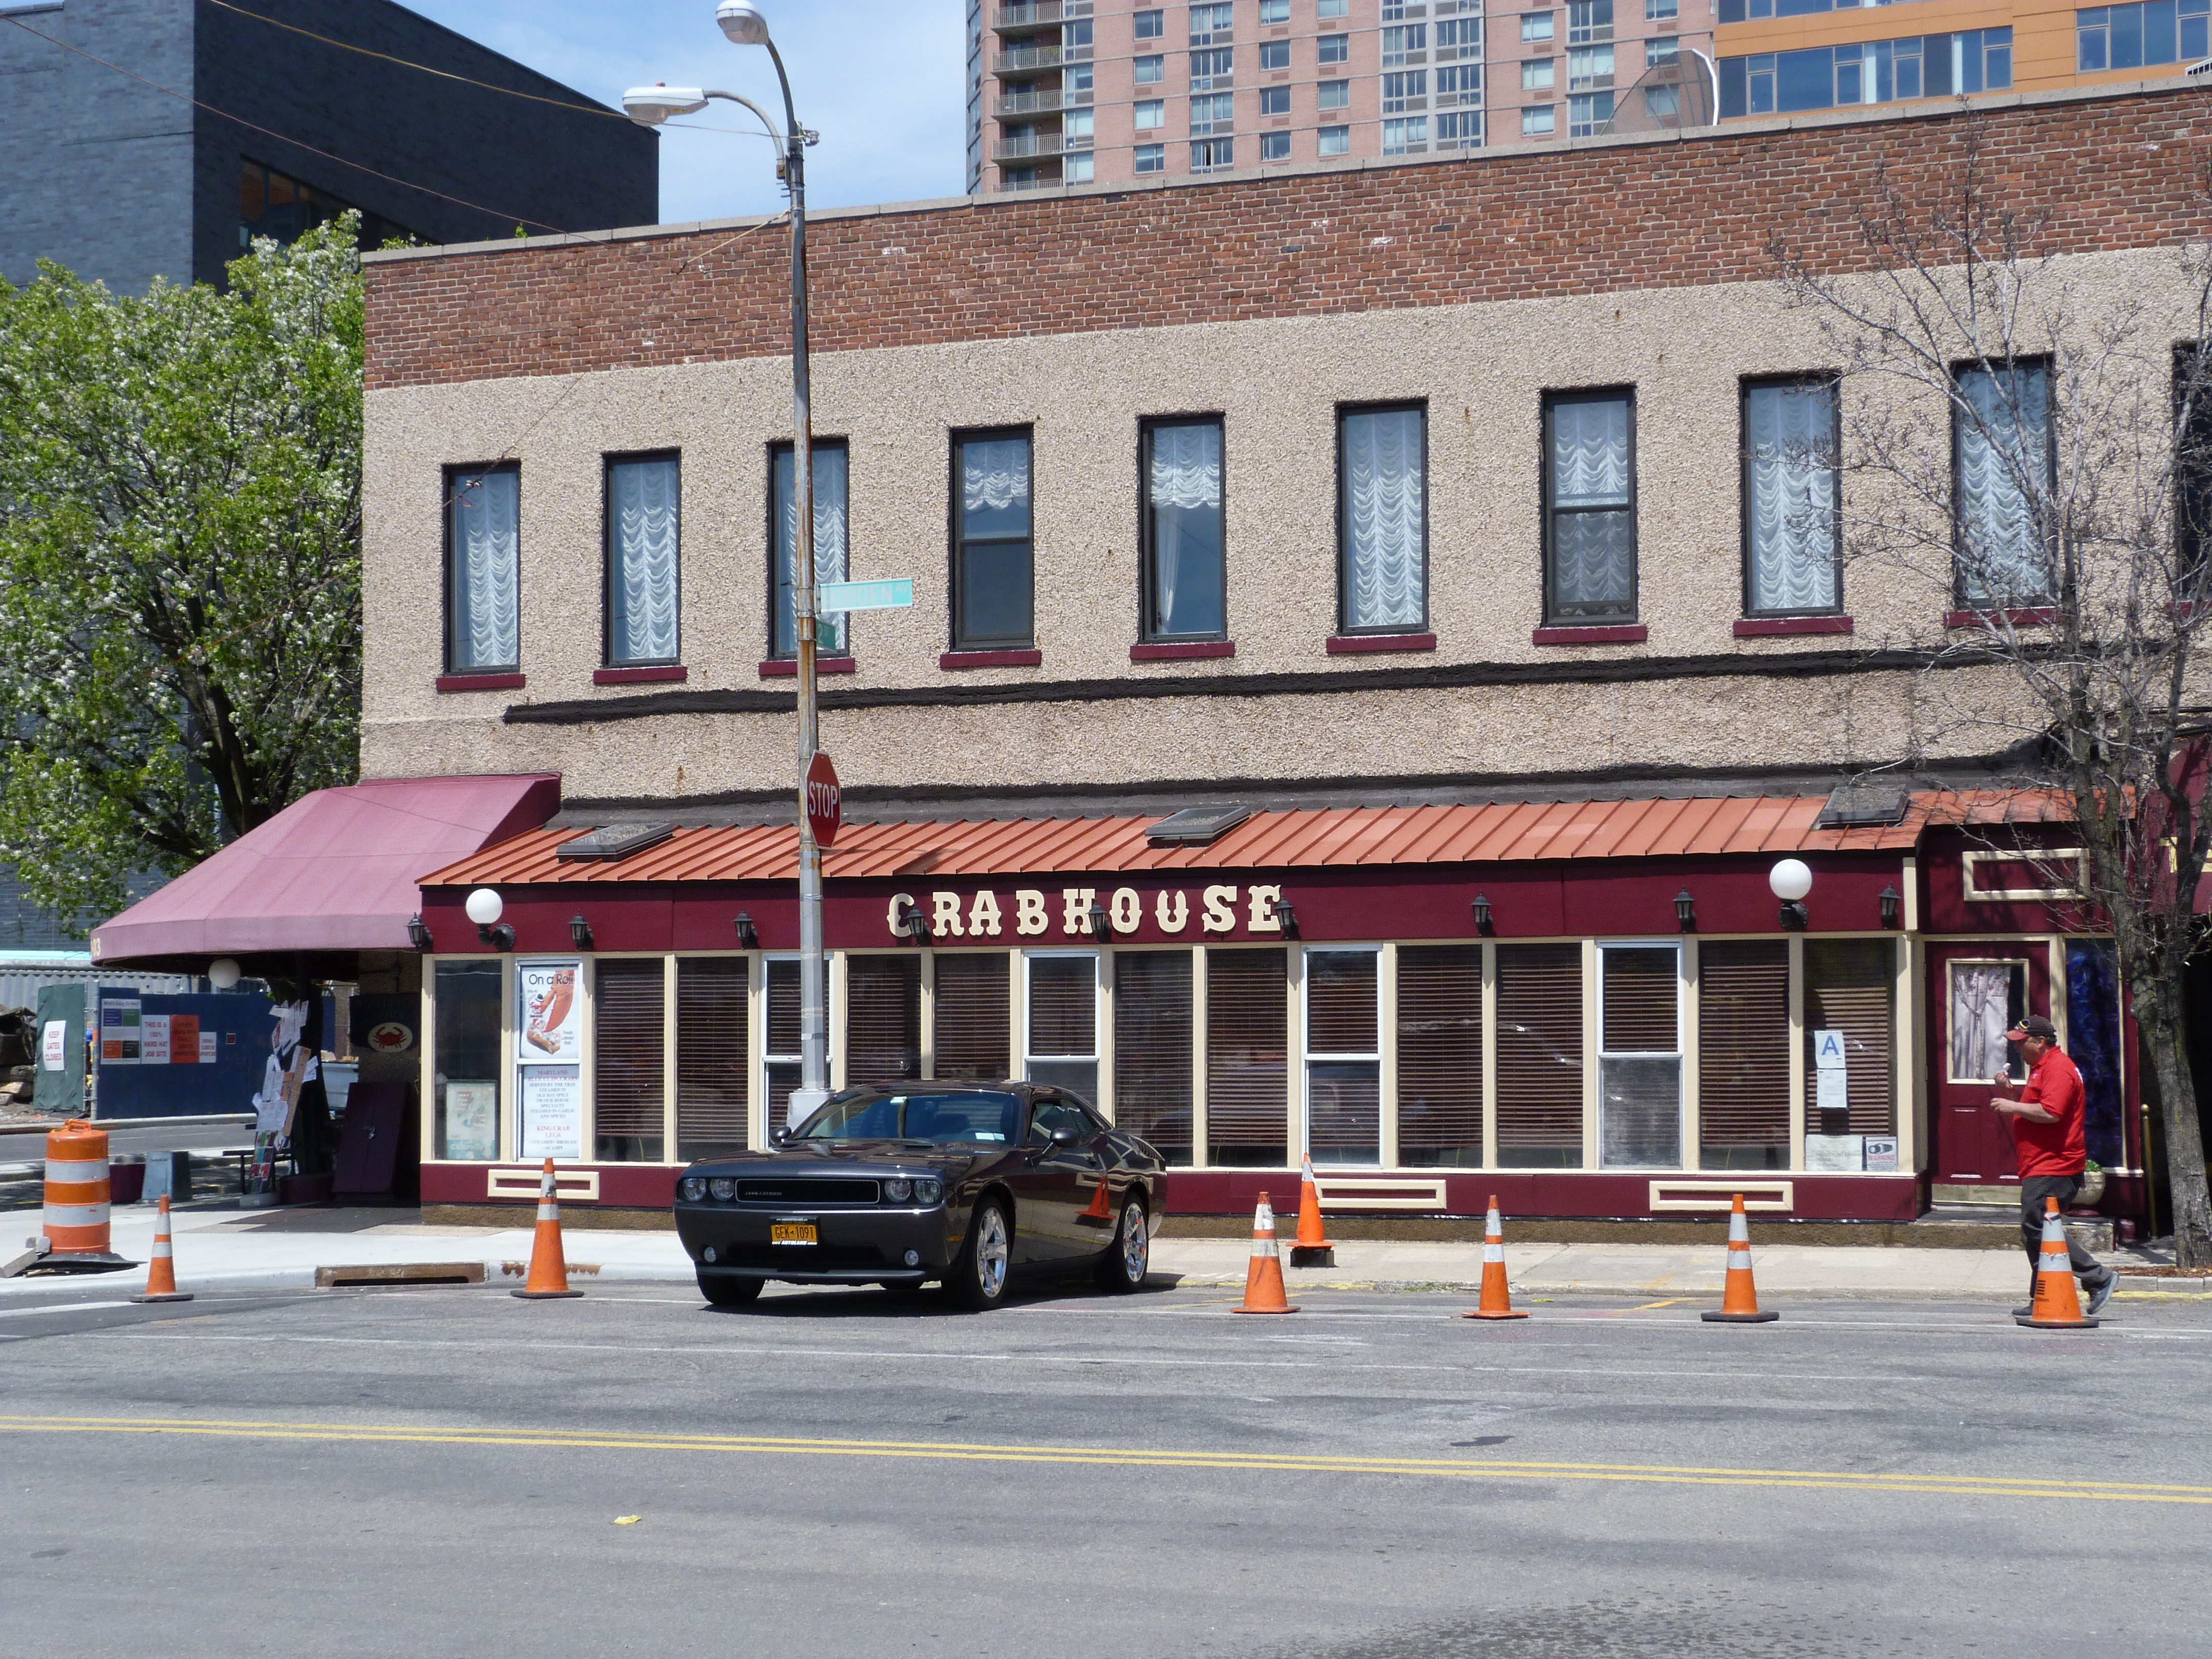 A lot of changes coming, but there's still the Crabhouse